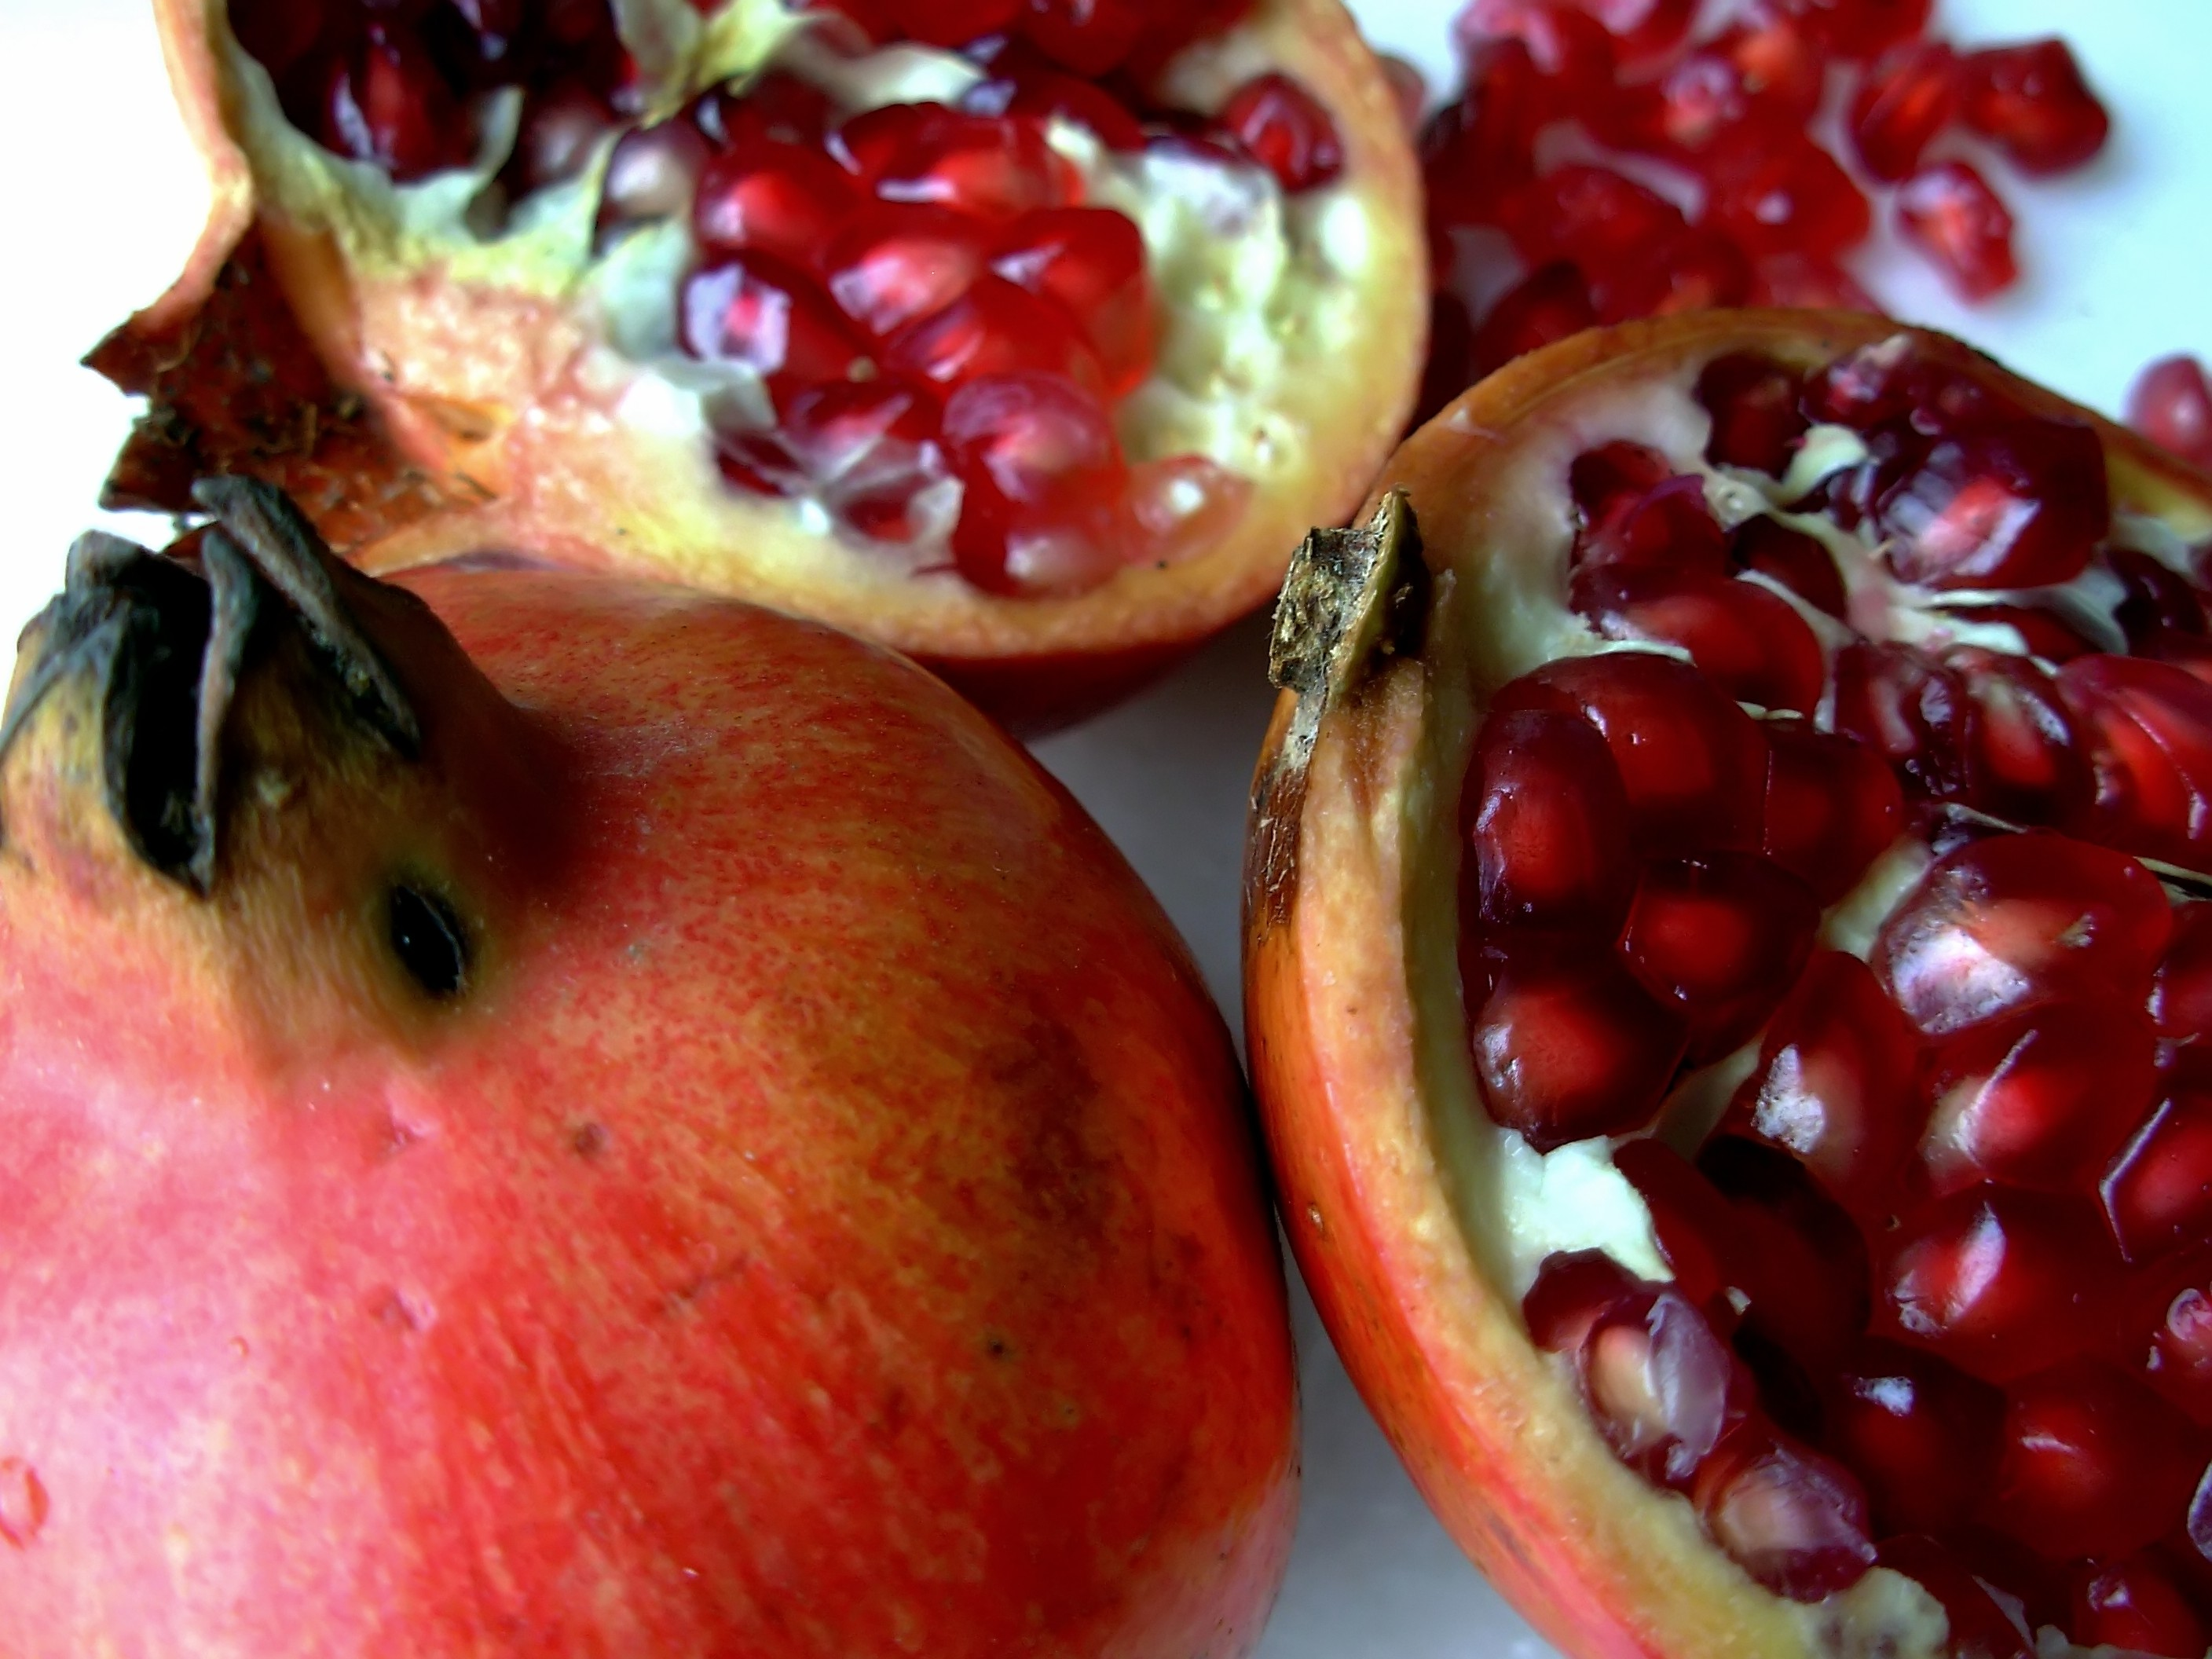 Arils of pomegrante fruit